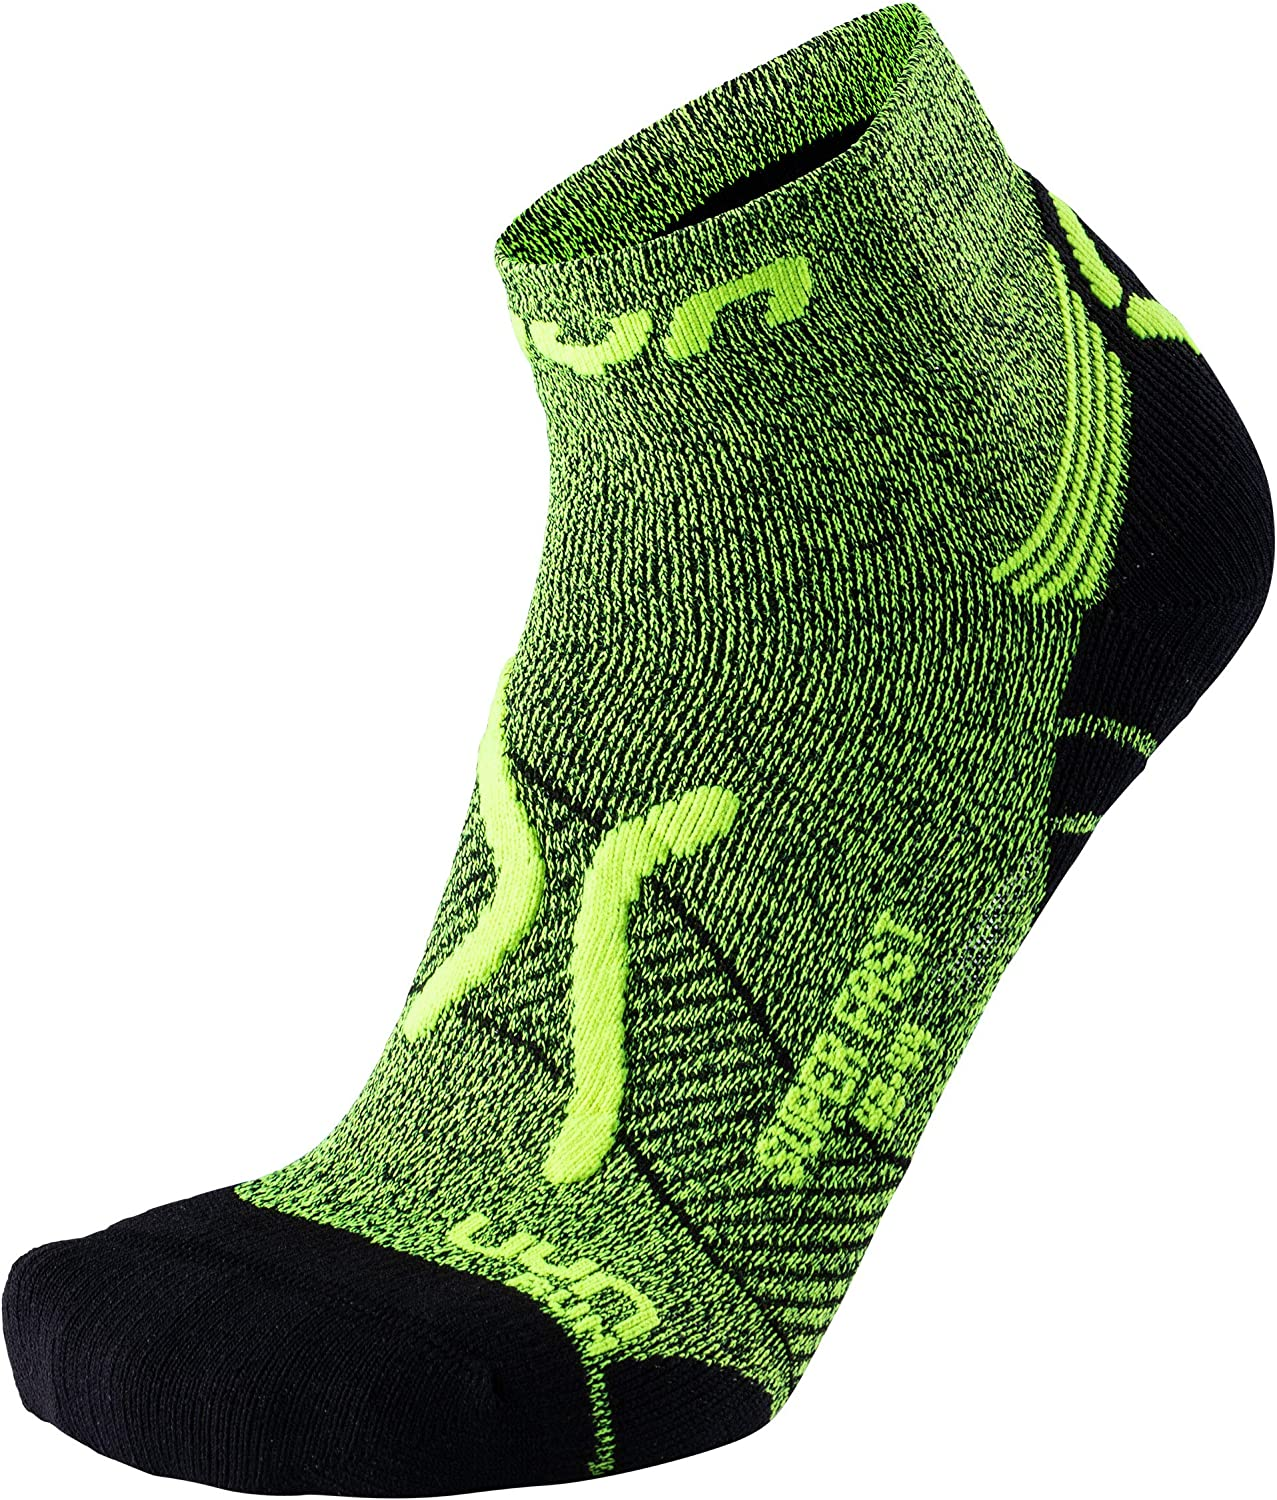 UYN Running Chaussettes Homme